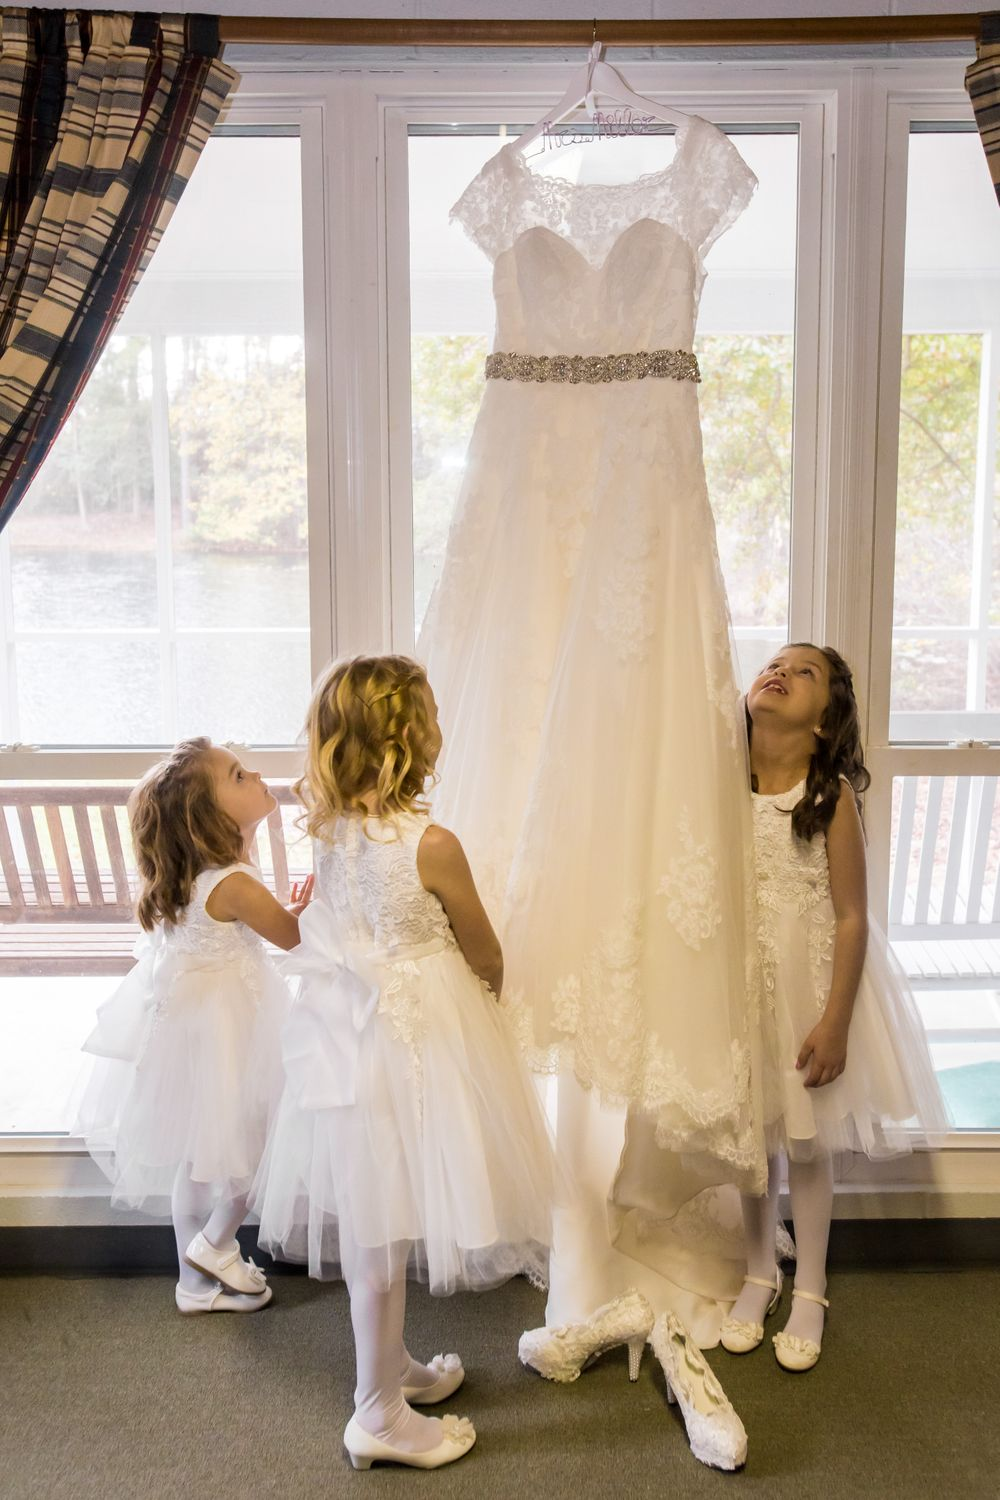 Flower girls inspect the bridal gown before during a wedding at T&S Farm in Leesville, SC